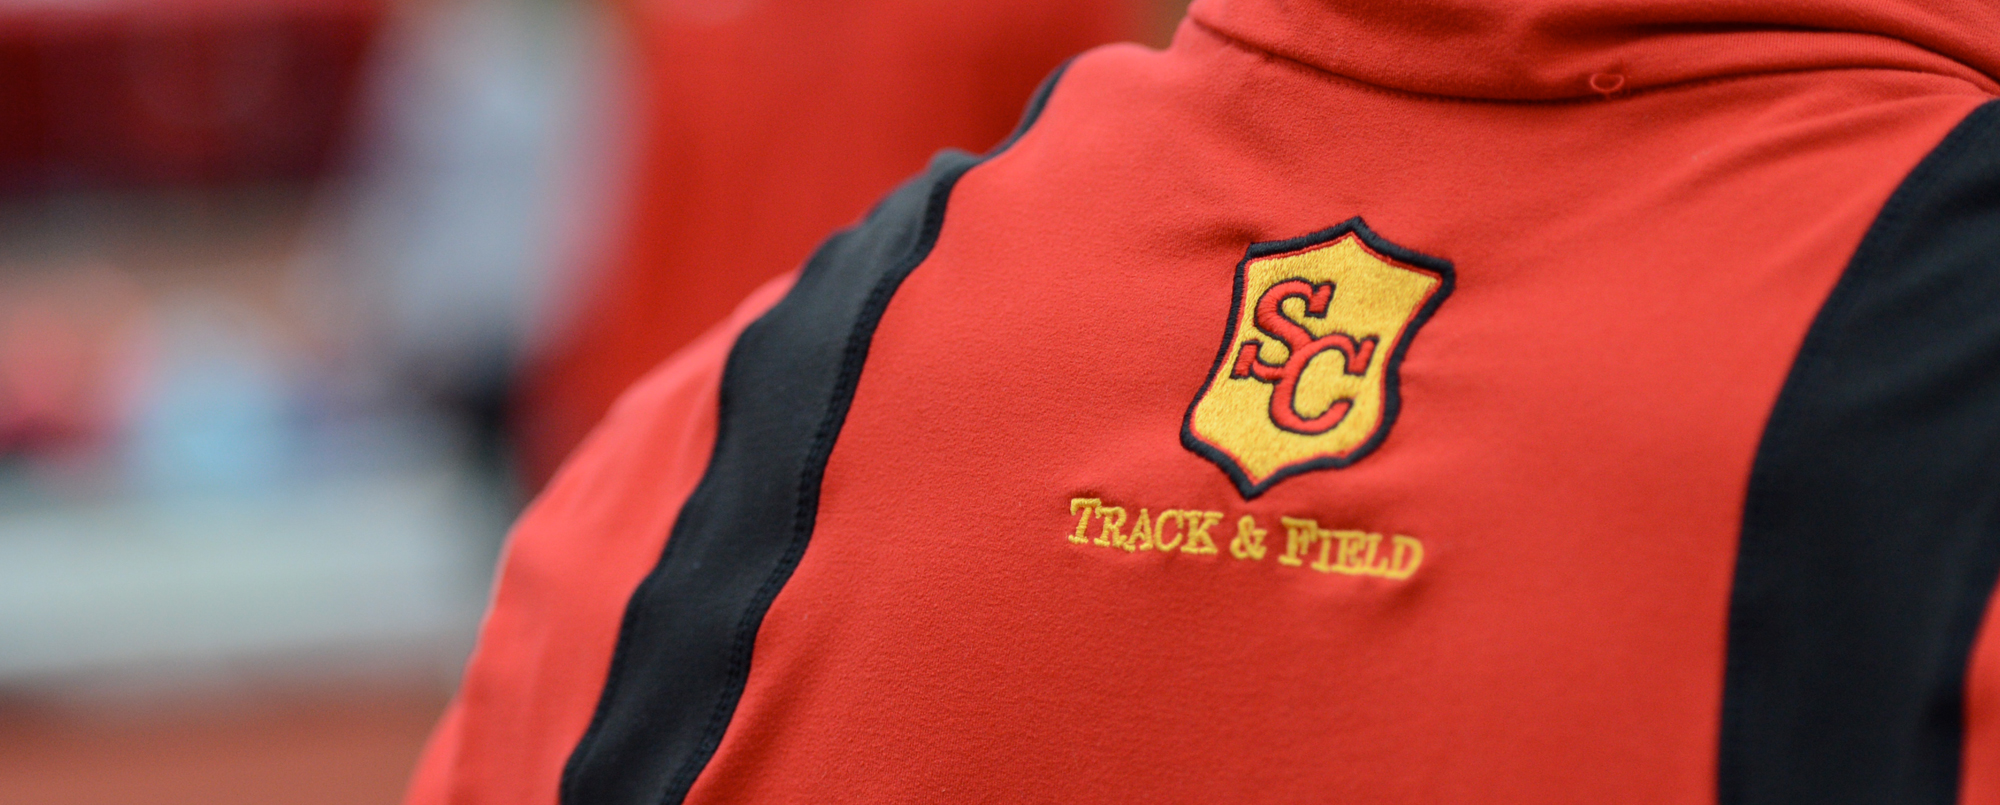 Track and field teams alter schedule, go to Central on Thursday